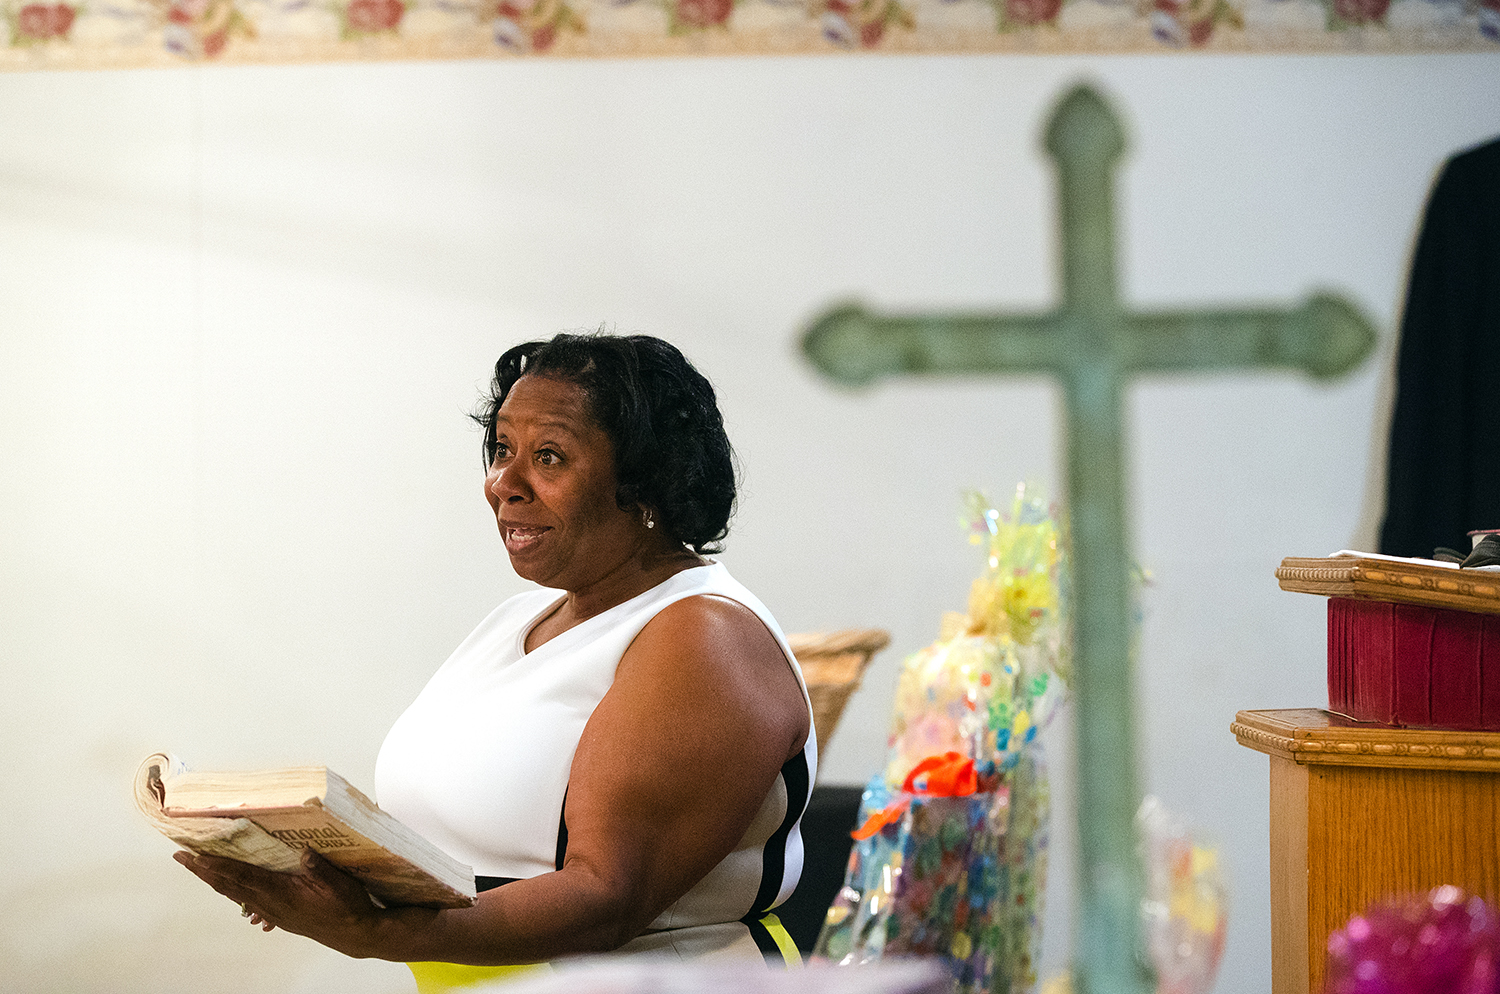 Debra Bell-Adetoro reads scripture during Easter service at City of Miracles International church in Springfield on Easter Sunday, April 1, 2018. [Ted Schurter/The State Journal-Register]